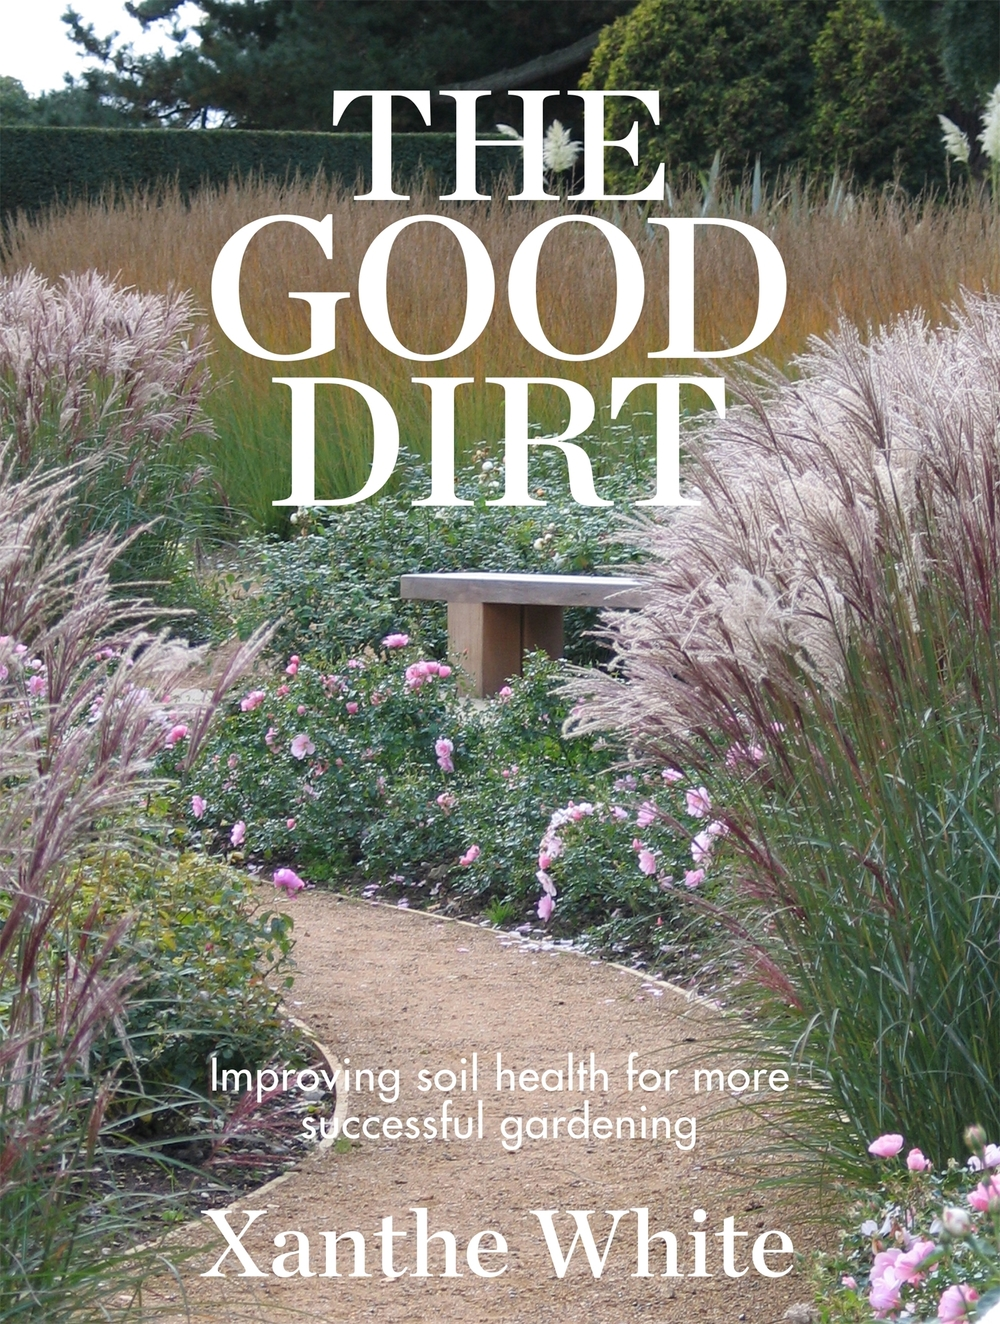 The Good Dirt Improving soil health for more successful gardening.  In The Good Dirt, landscape designer Xanthe White goes beneath the surface to reveal the secrets to successful gardening. As the title suggests, this book is all about the soil we find in our garden and more particularly how we can maximize its growing potential.  If you've ever wondered why some plants thrive in one location but struggle in your own backyard you'll be likely to find explanations in the soil below. Xanthe White examines the five main soil types found in New Zealand and offers advice on how to get the best from each one by working in harmony with nature. Complete with ingredients guides for each soil type and ideas and design features to enhance its fertility, this is an essential companion for anyone looking to establish a new garden or improve their existing one. Random House NZ 2016